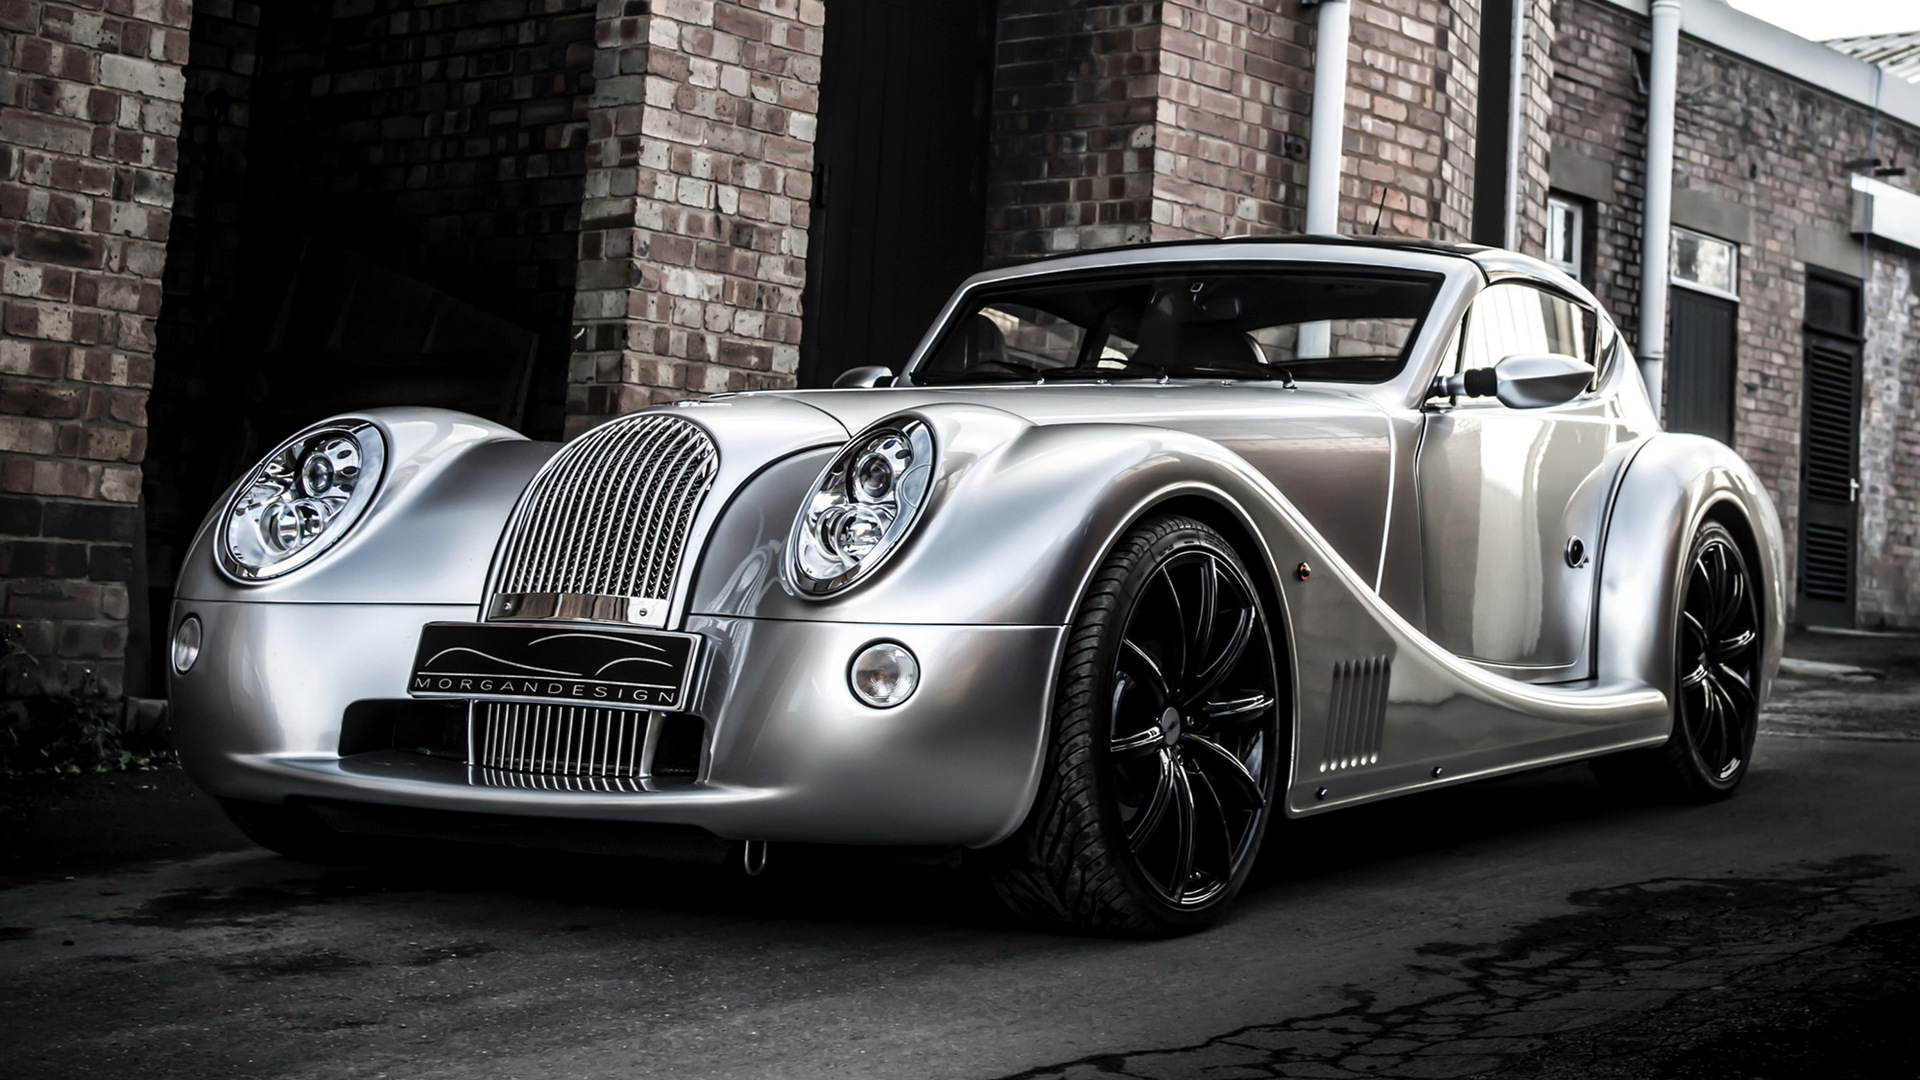 2010 Morgan Aero Super Sports - Wallpapers and HD Images ...